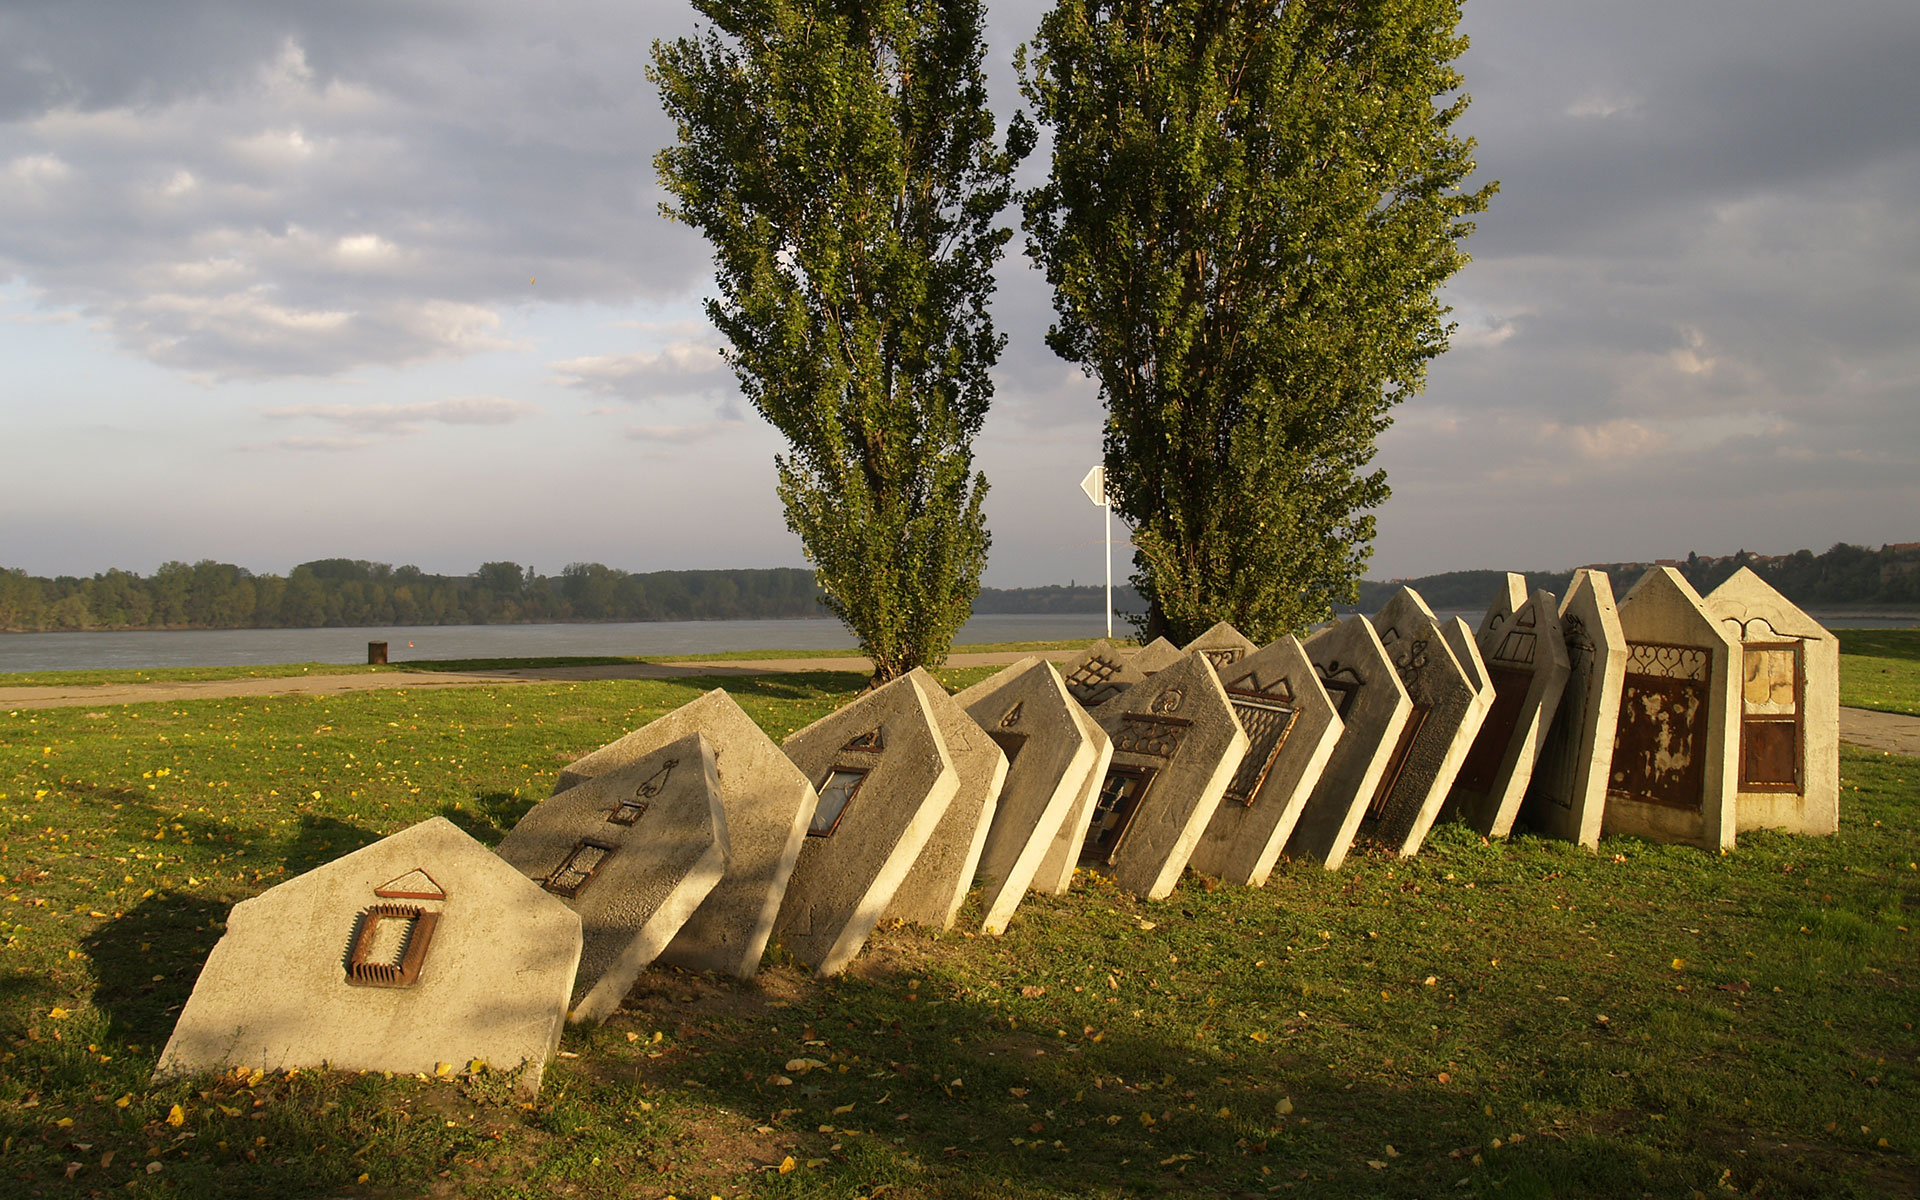 This striking modern art installation on the banks of the Danube in Vukovar recalls the turbulent recent history of eastern Croatia (photo © hidden europe).